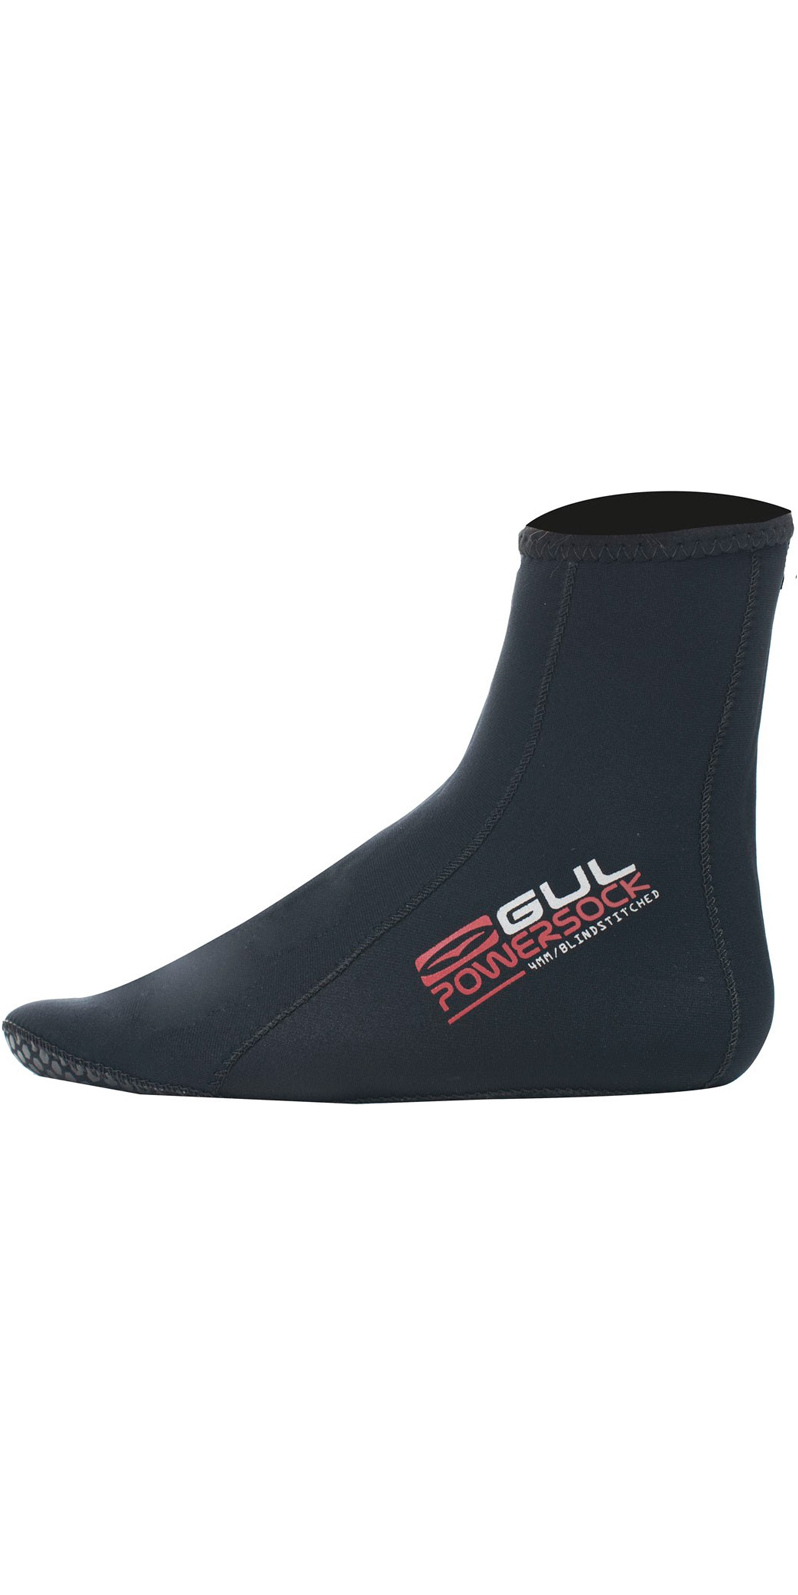 2019 Gul Power Sock 4mm Neoprene Wesuit sock BO1270 A3